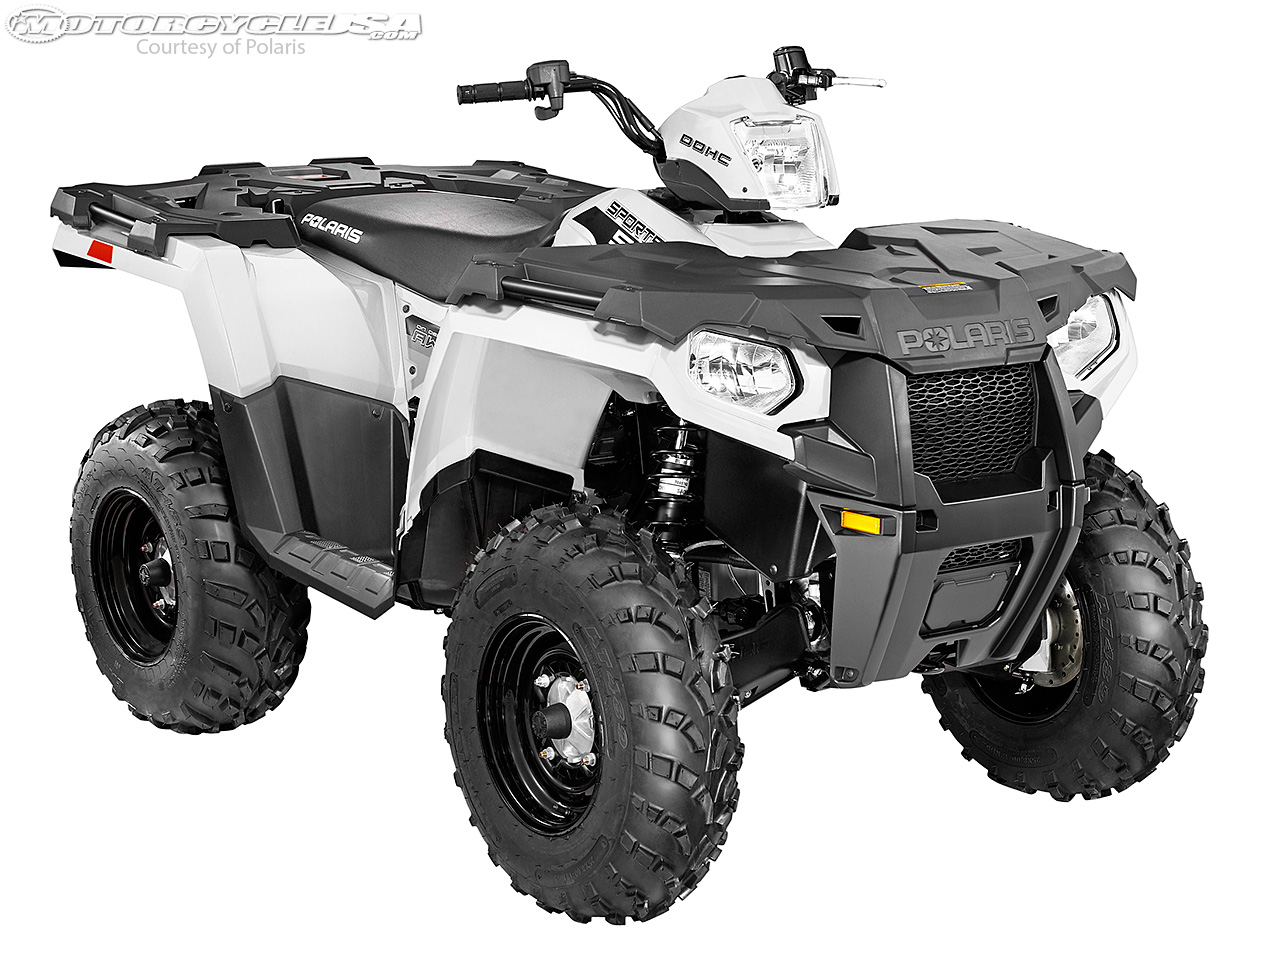 Polaris Sportsman 90 2005 images #121097